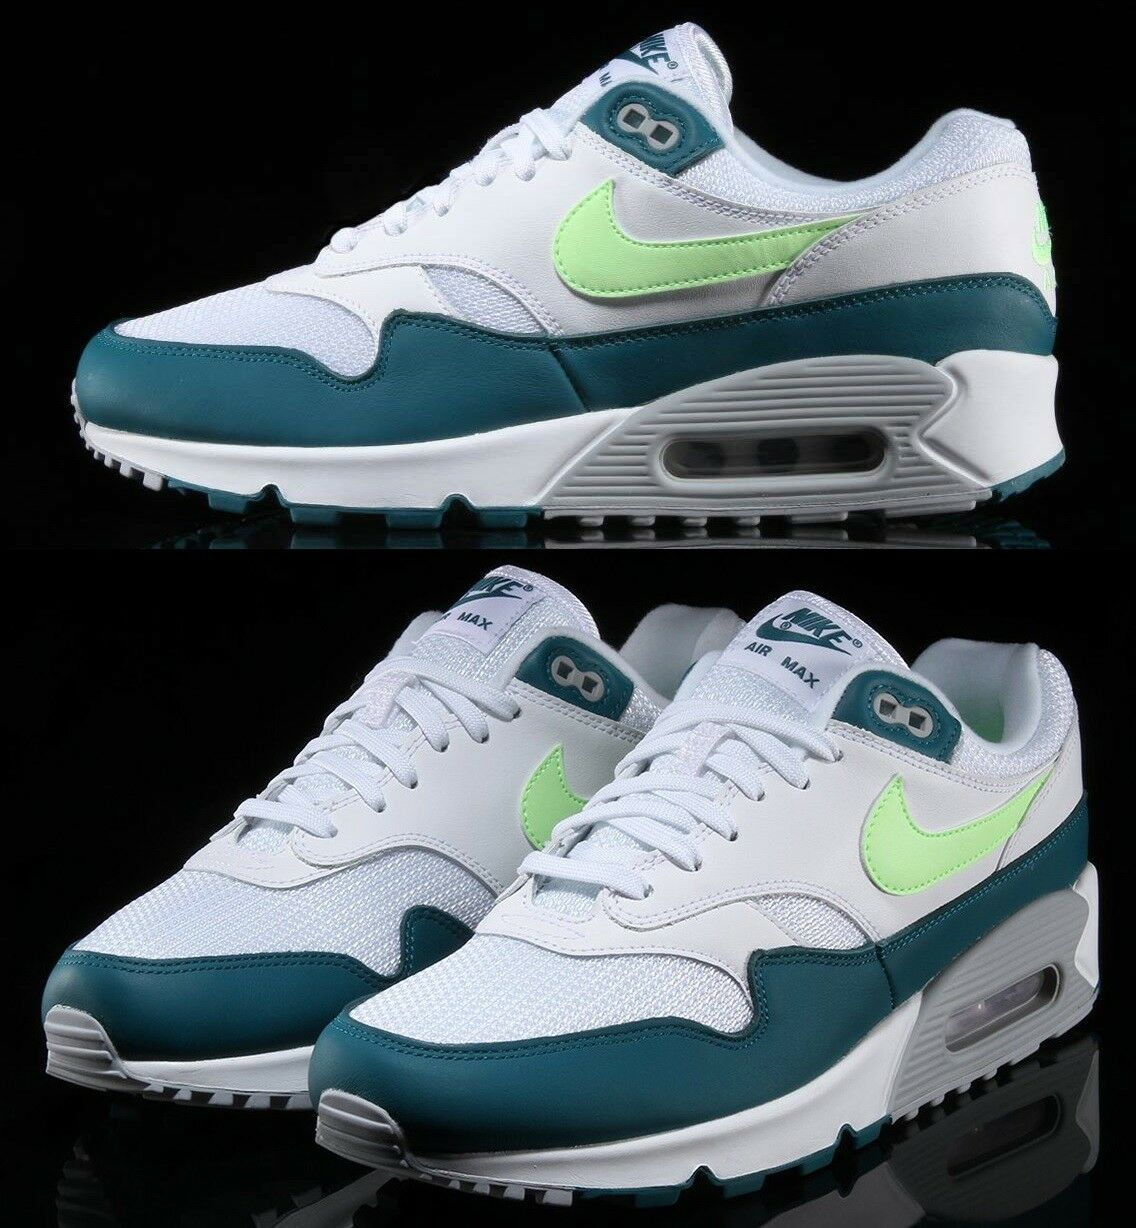 Nike Air Lifestyle Max 90/1 Hommes Sneaker Lifestyle Air Chaussures Geode Teal Lime Blast 8305ef